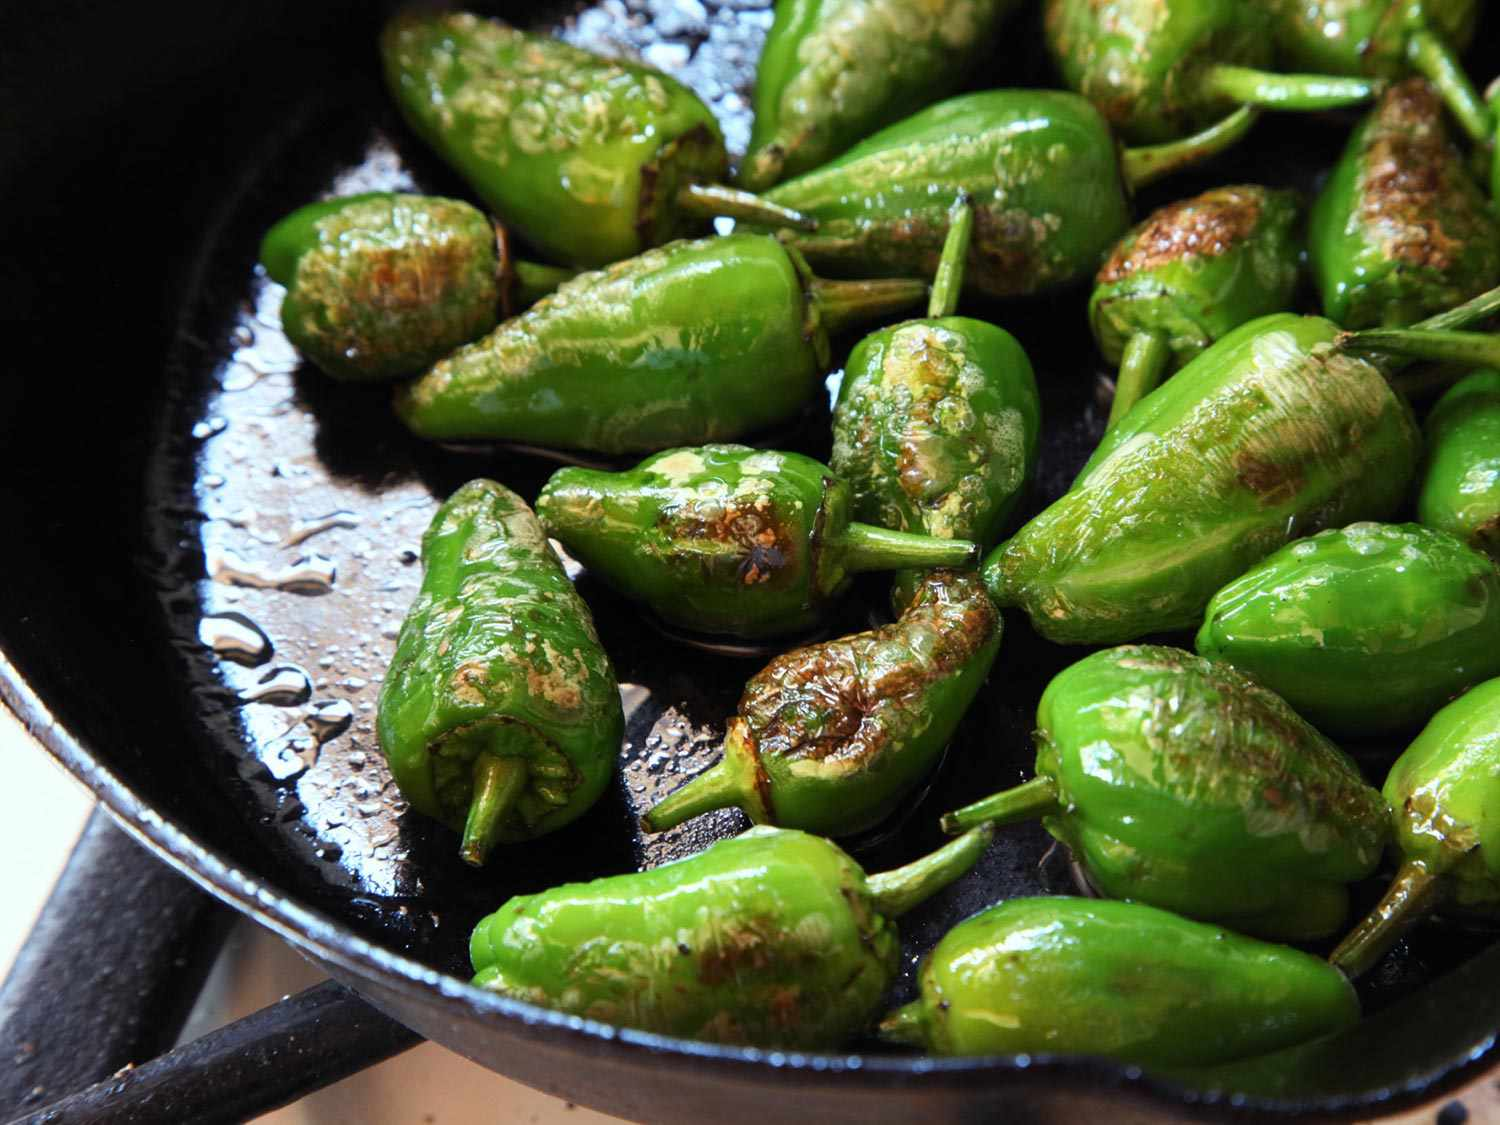 Spanish-style Padrón peppers in a cast iron skillet; some are charred and blistered.